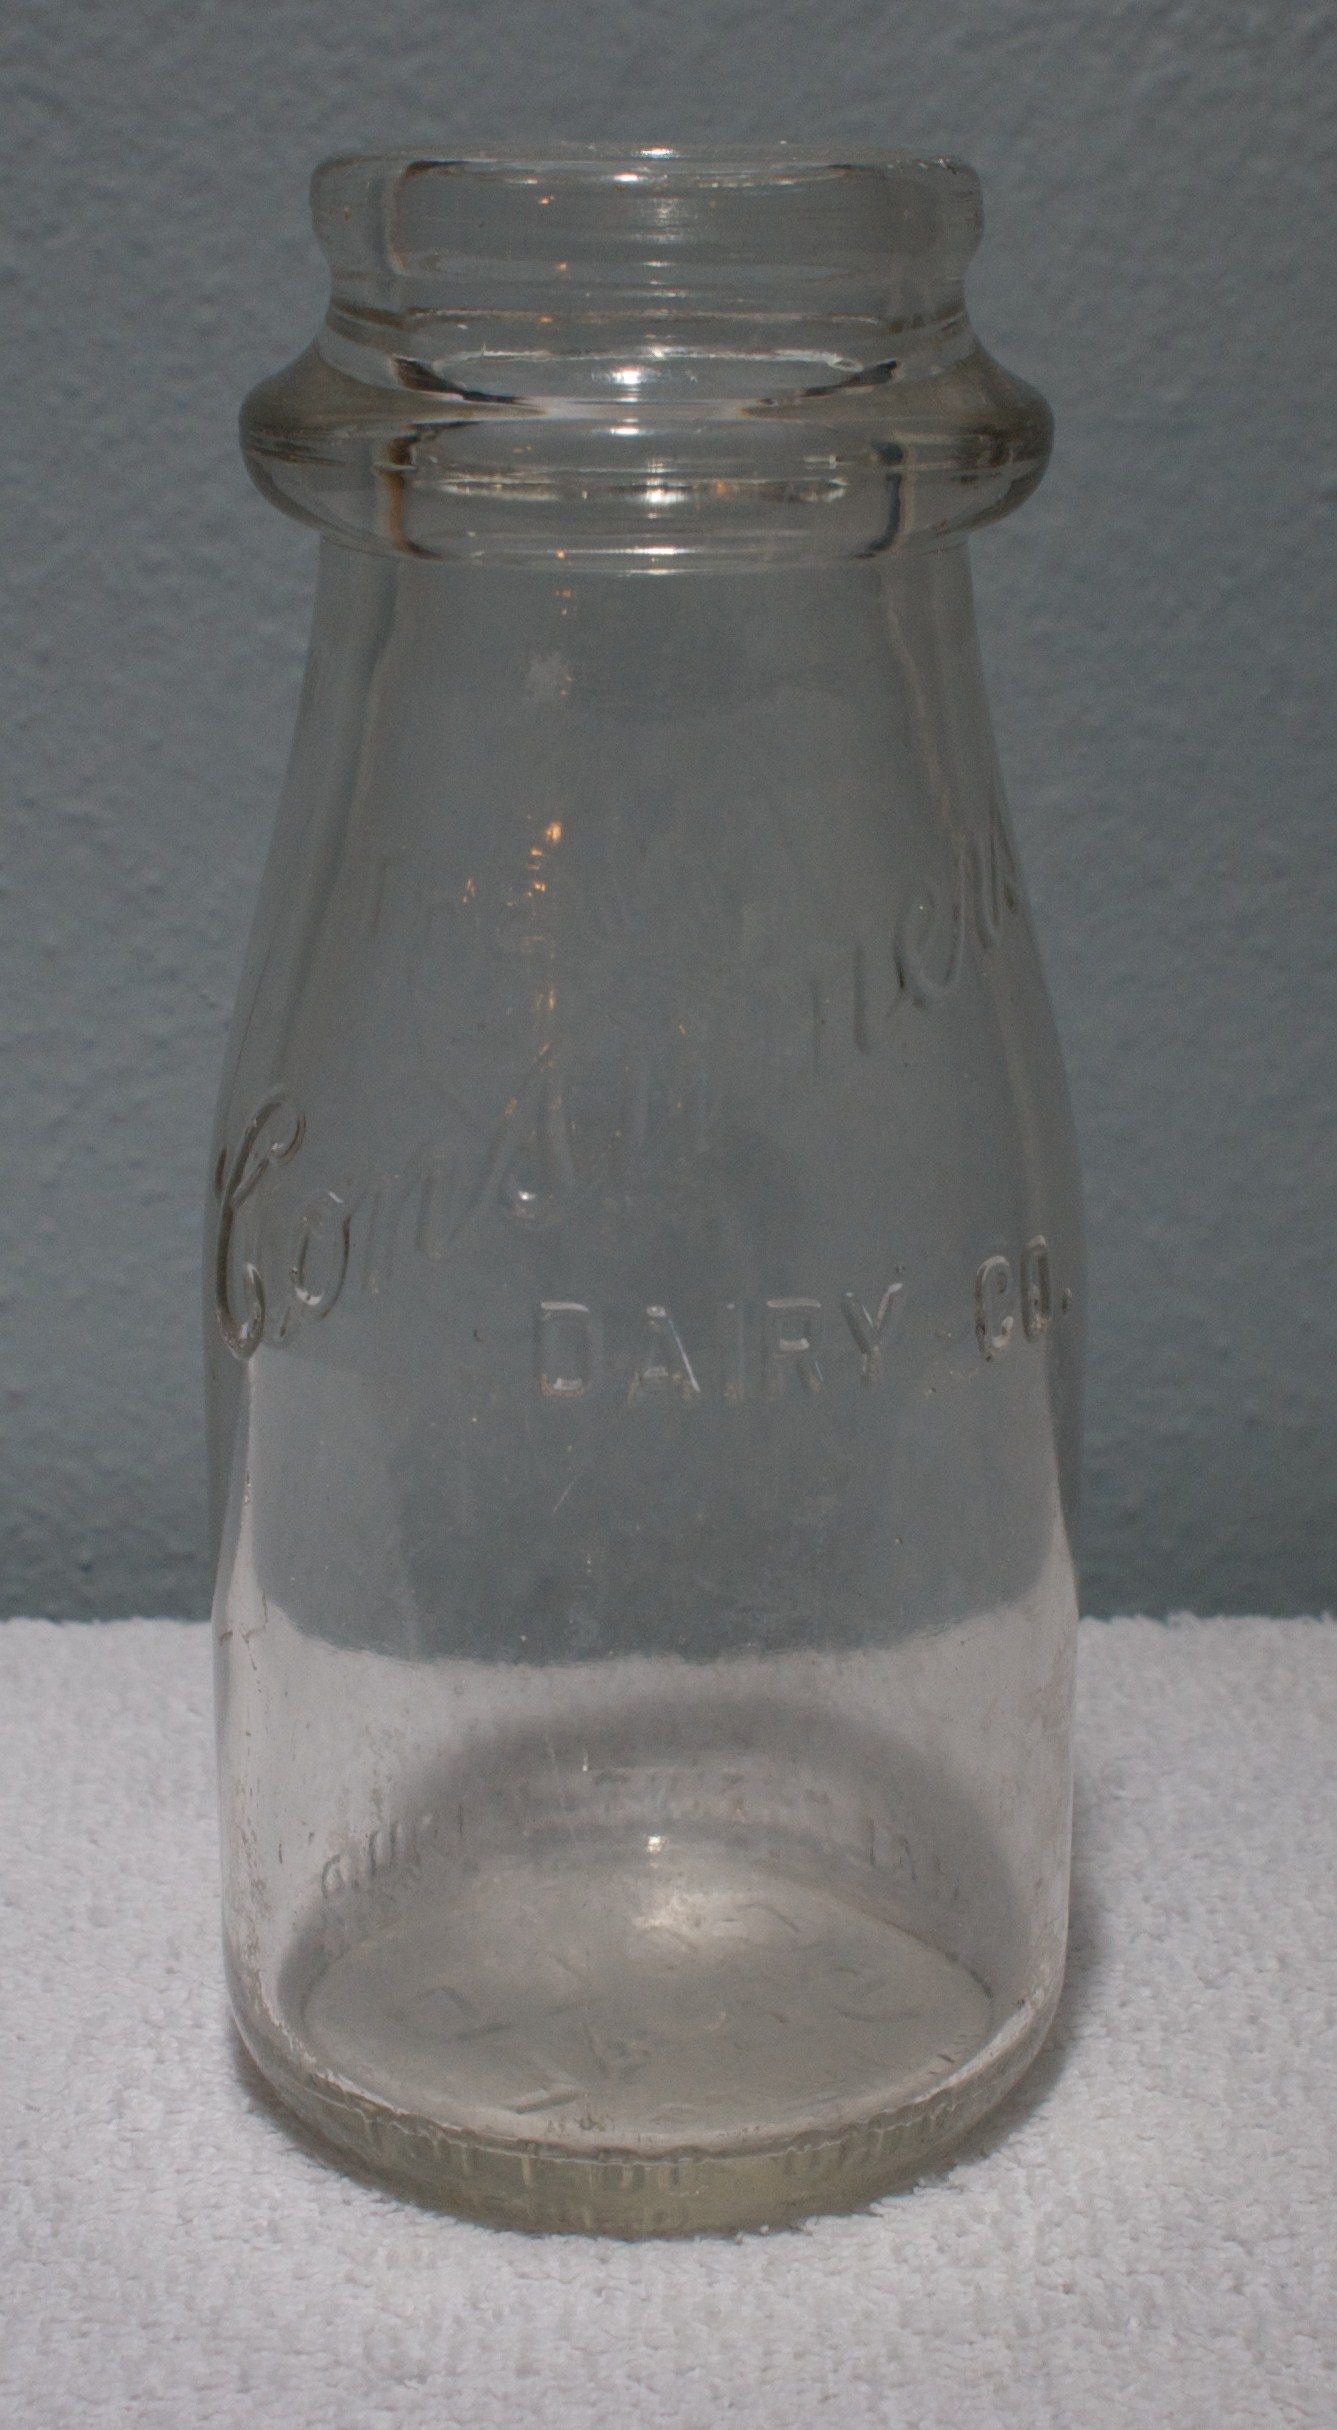 Consumer Dairy Half-Pint Milk Bottle 1930s